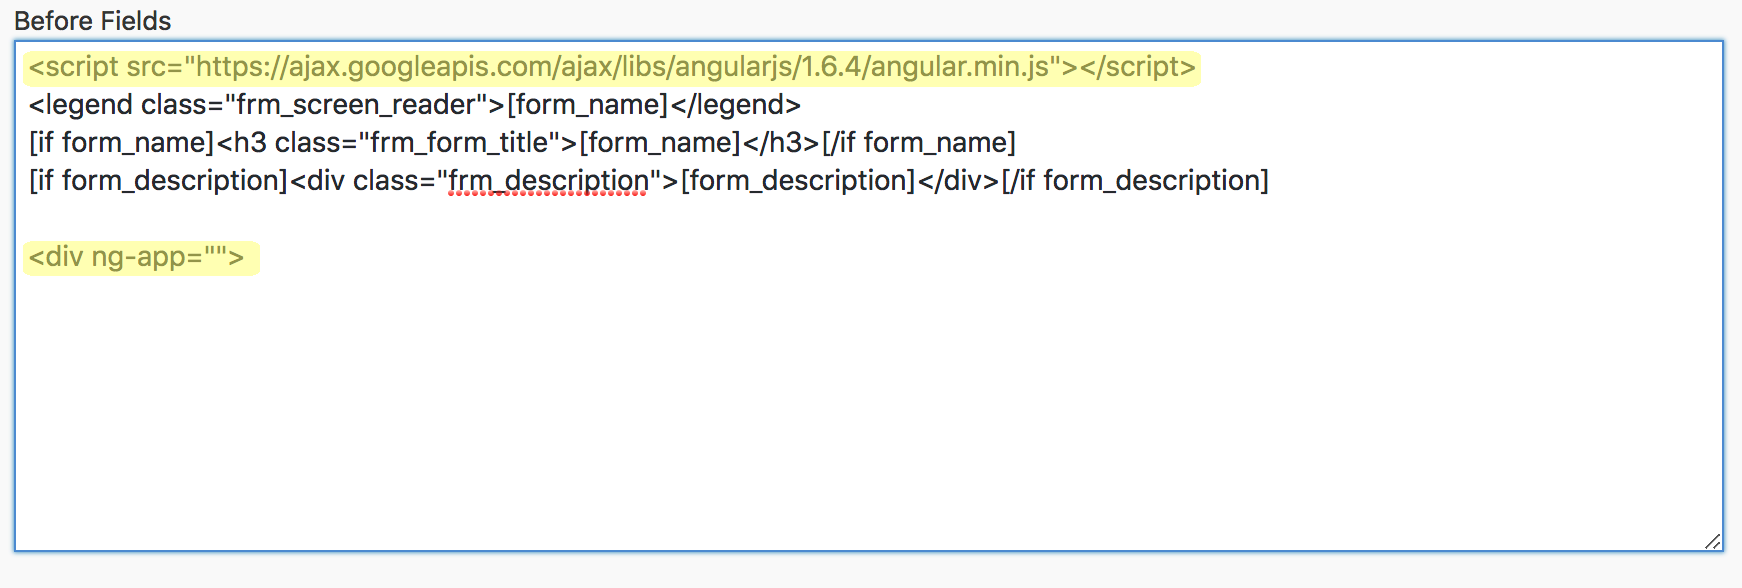 AngularJS Examples before fields